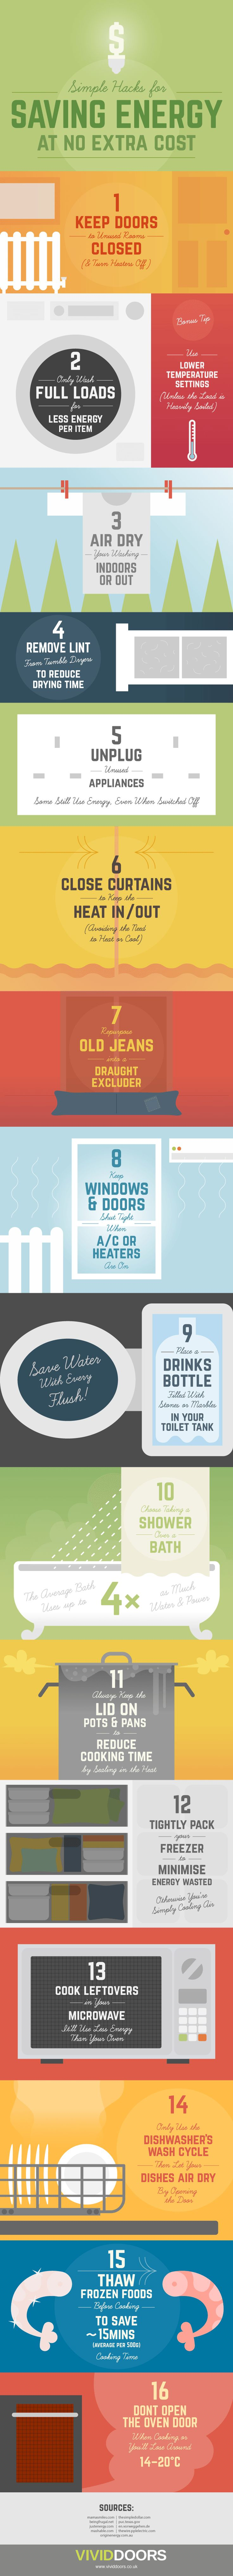 Average Electric Bill For 1 Bedroom Apartment Delectable Inspiration